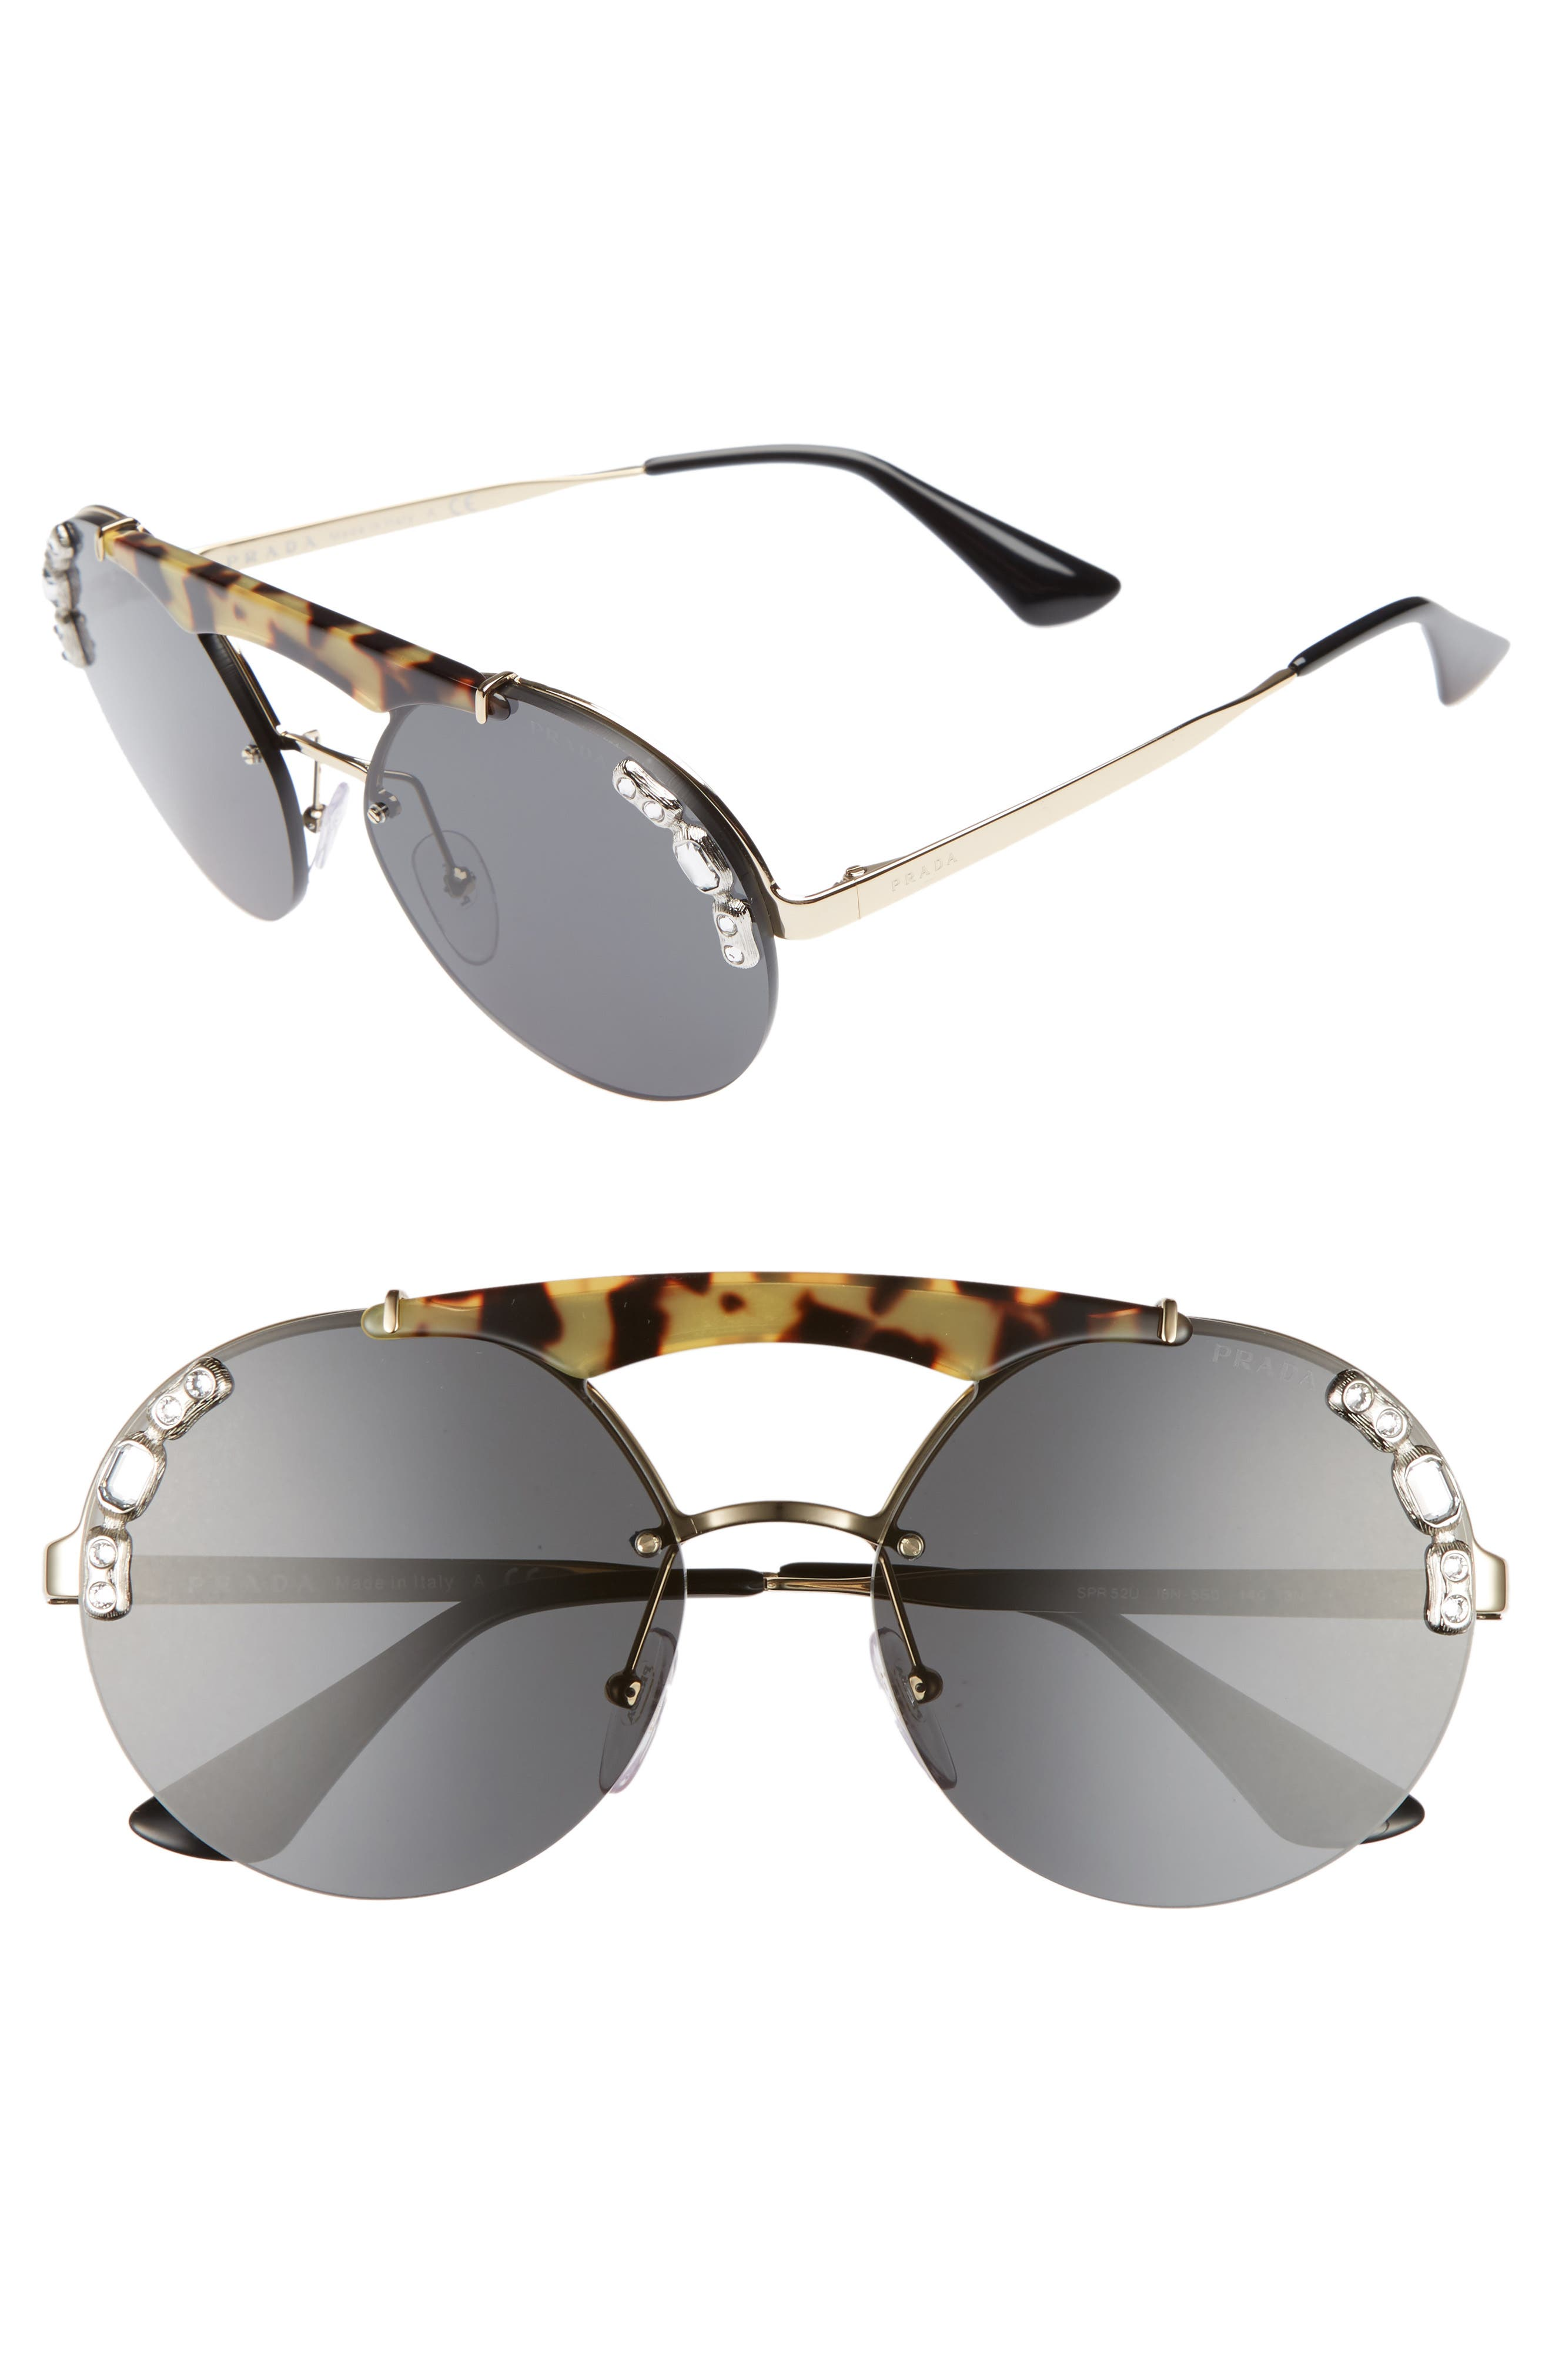 52mm Embellished Round Rimless Sunglasses,                         Main,                         color, 100